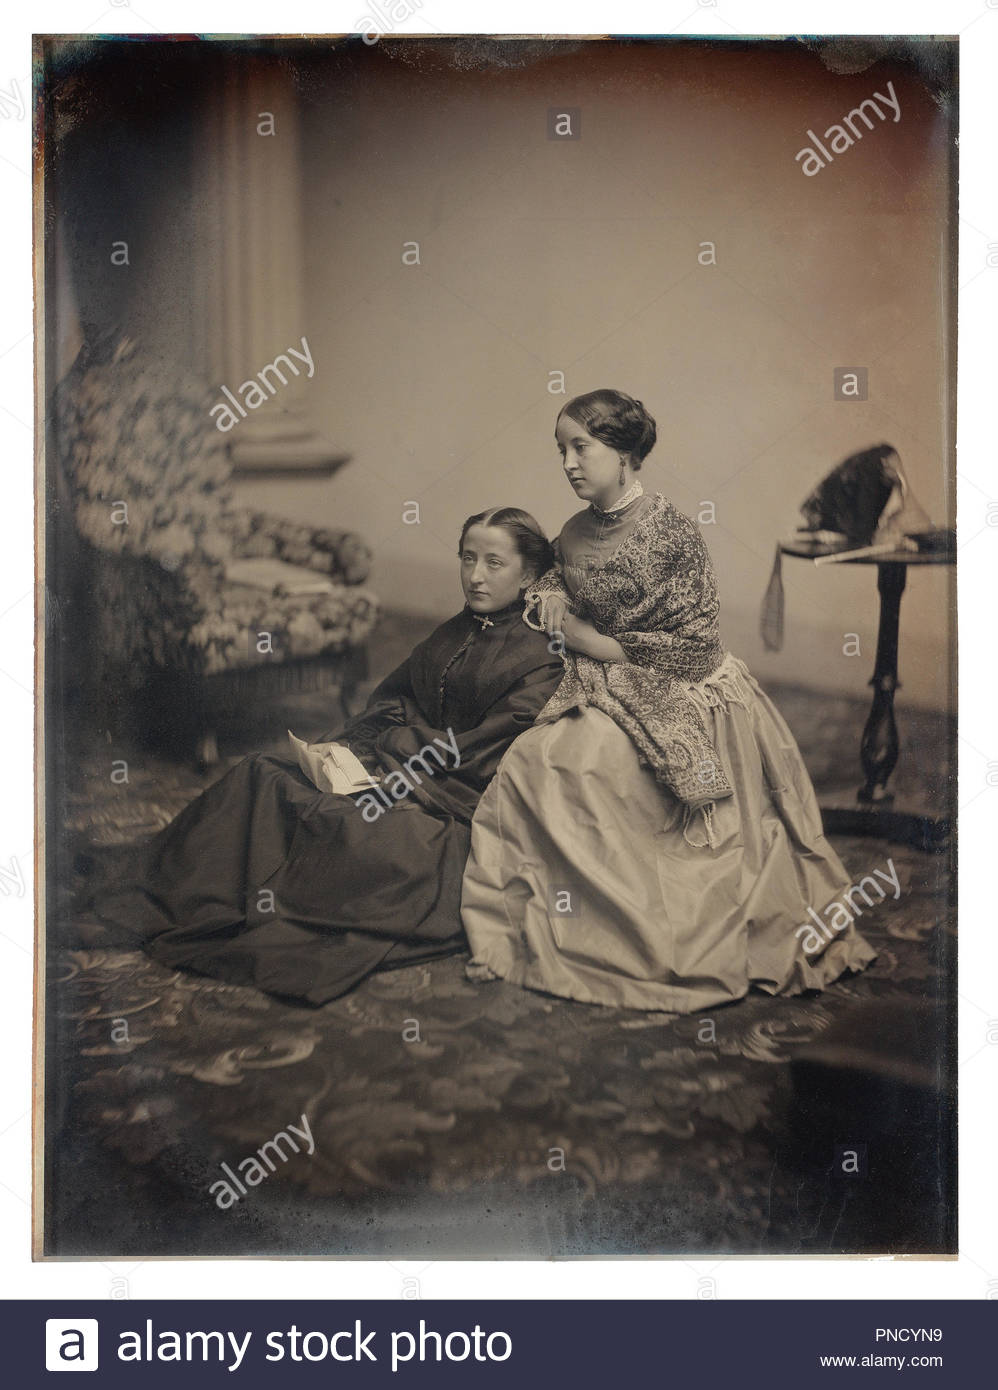 The Letter. Date/Period: Ca. 1850. Unknown. Daguerreotype Daguerreotype. Height: 215.90 mm (8.50 in); Width: 165.10 mm (6.50 in). Author: Albert Sands Southworth. Josiah Johnson Hawes. Albert Sands Southworth and Josiah Johnson Hawes. - Stock Image